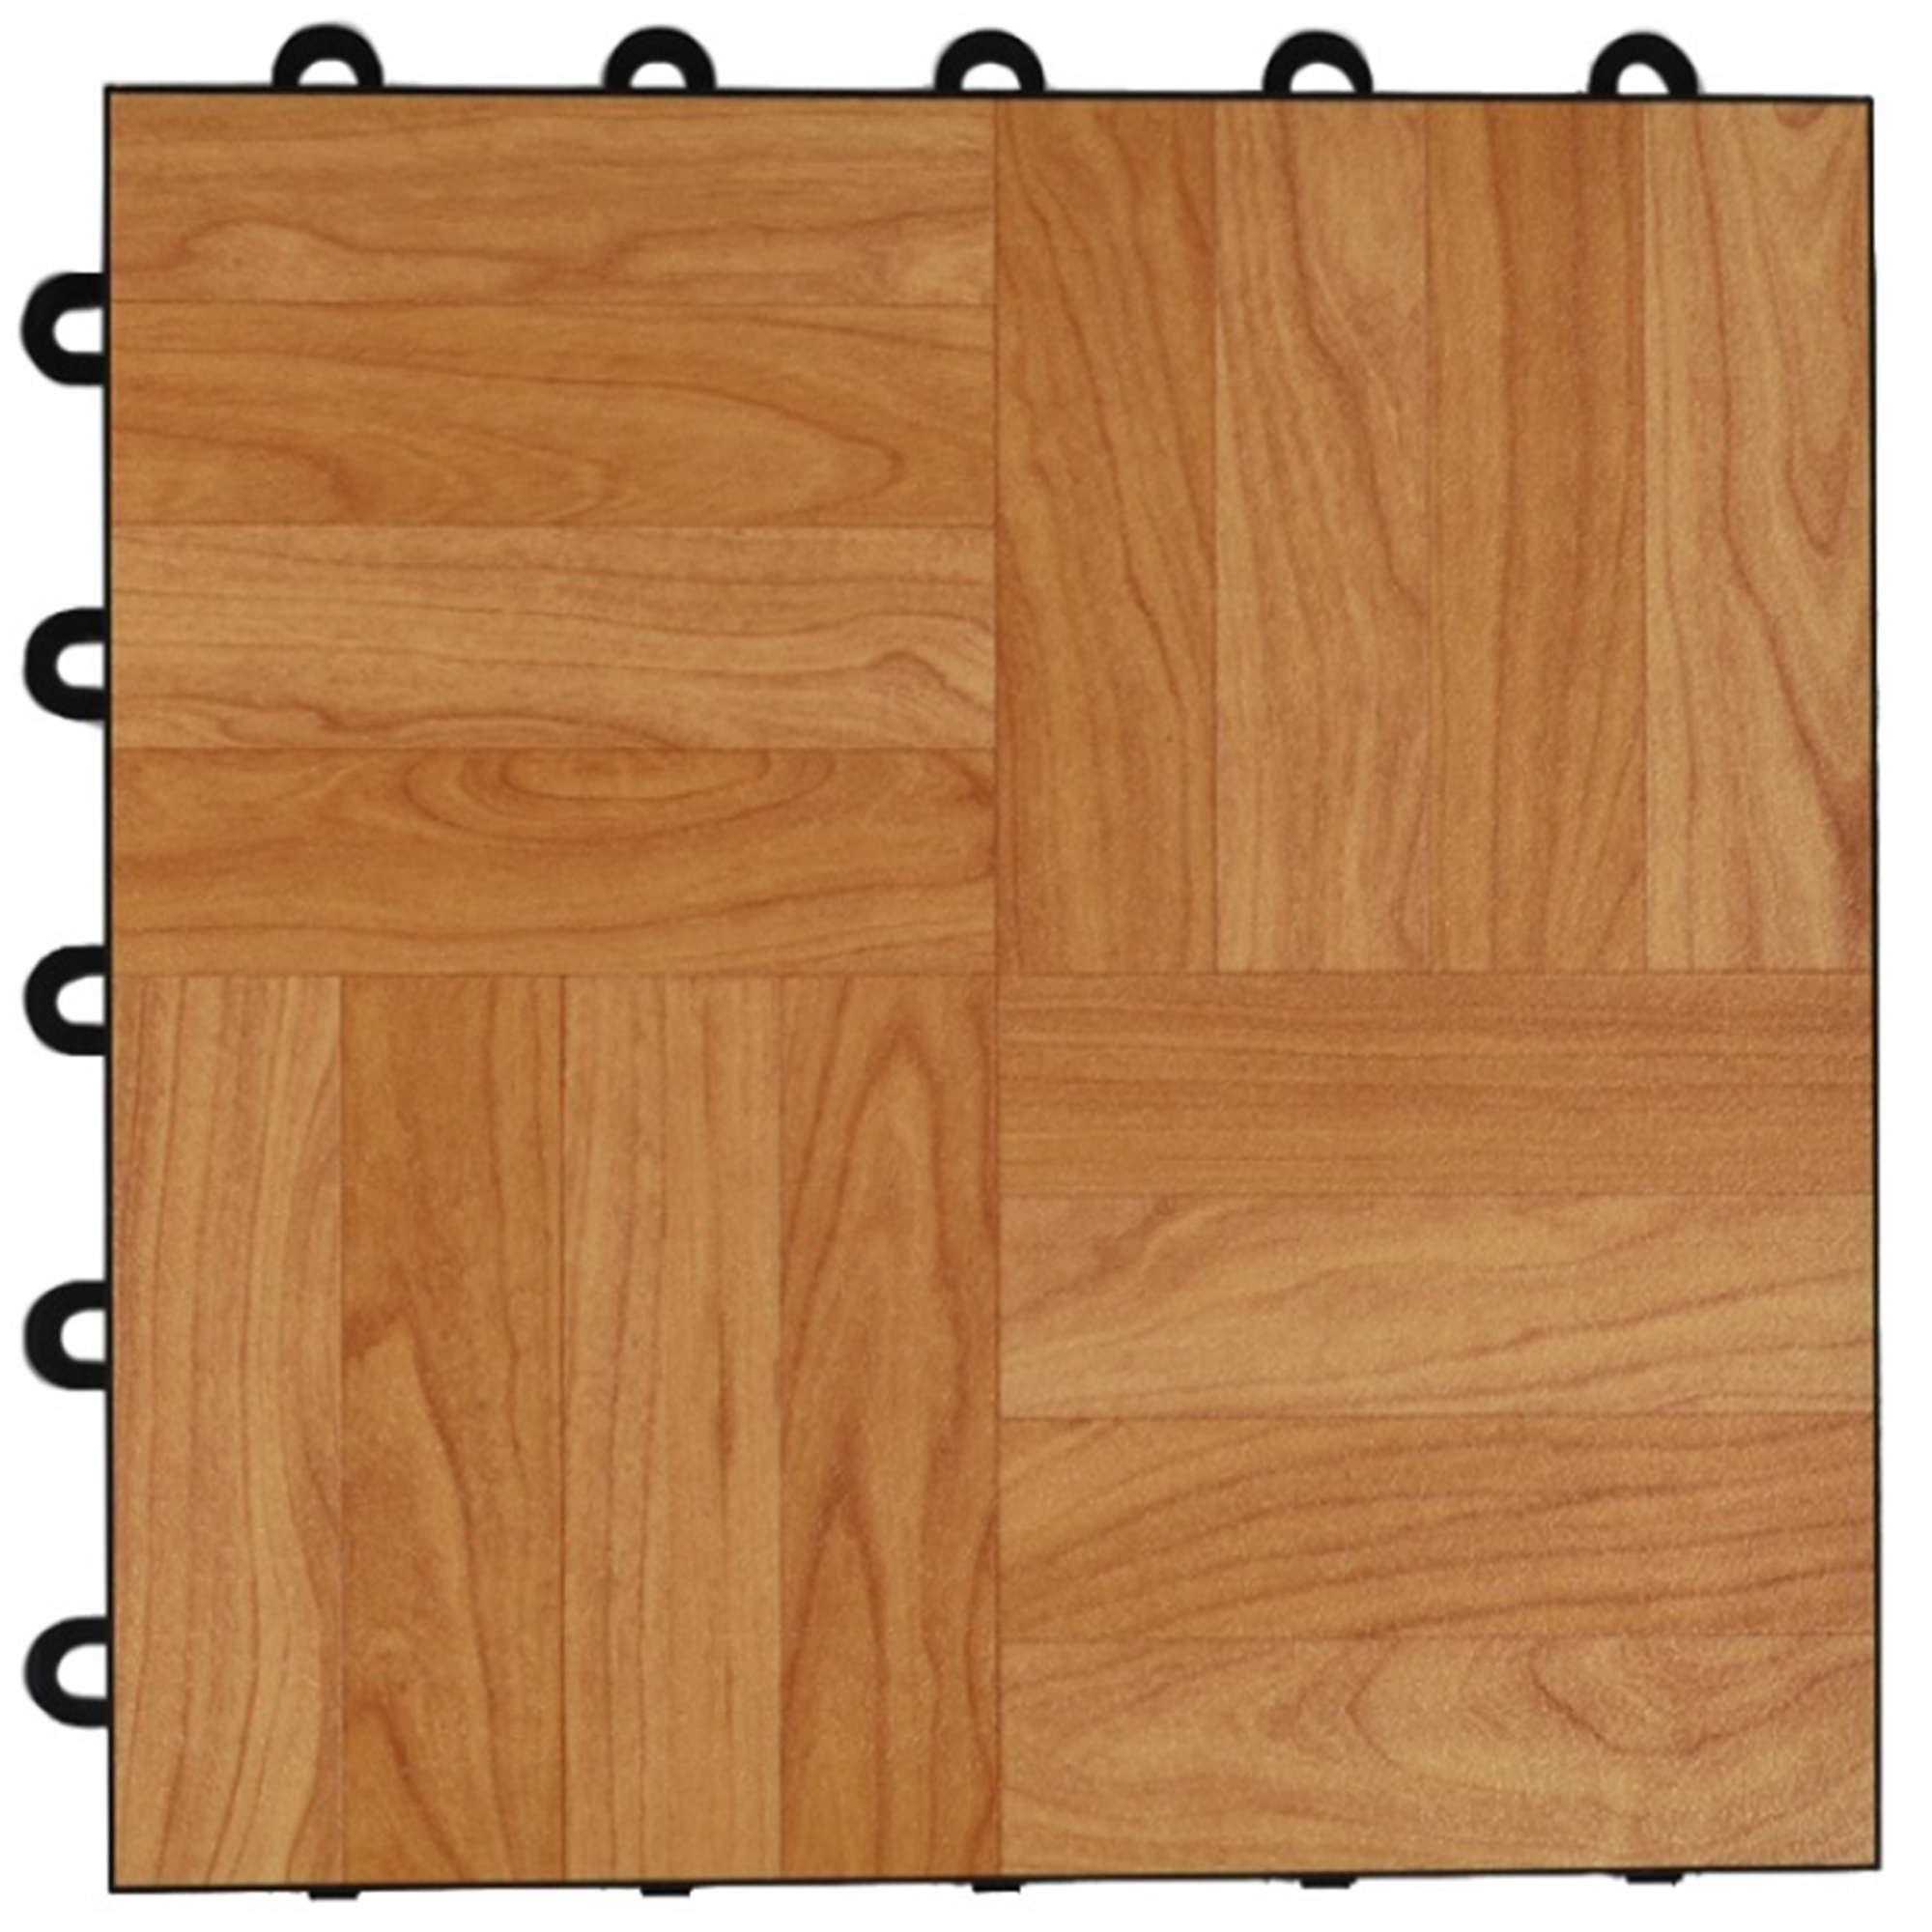 Greatmats Max Tile Vinyl Interlocking Raised Modular 1 ft. x 1 ft. x 5/8 in. Floor Tiles Light Oak 26 Pack